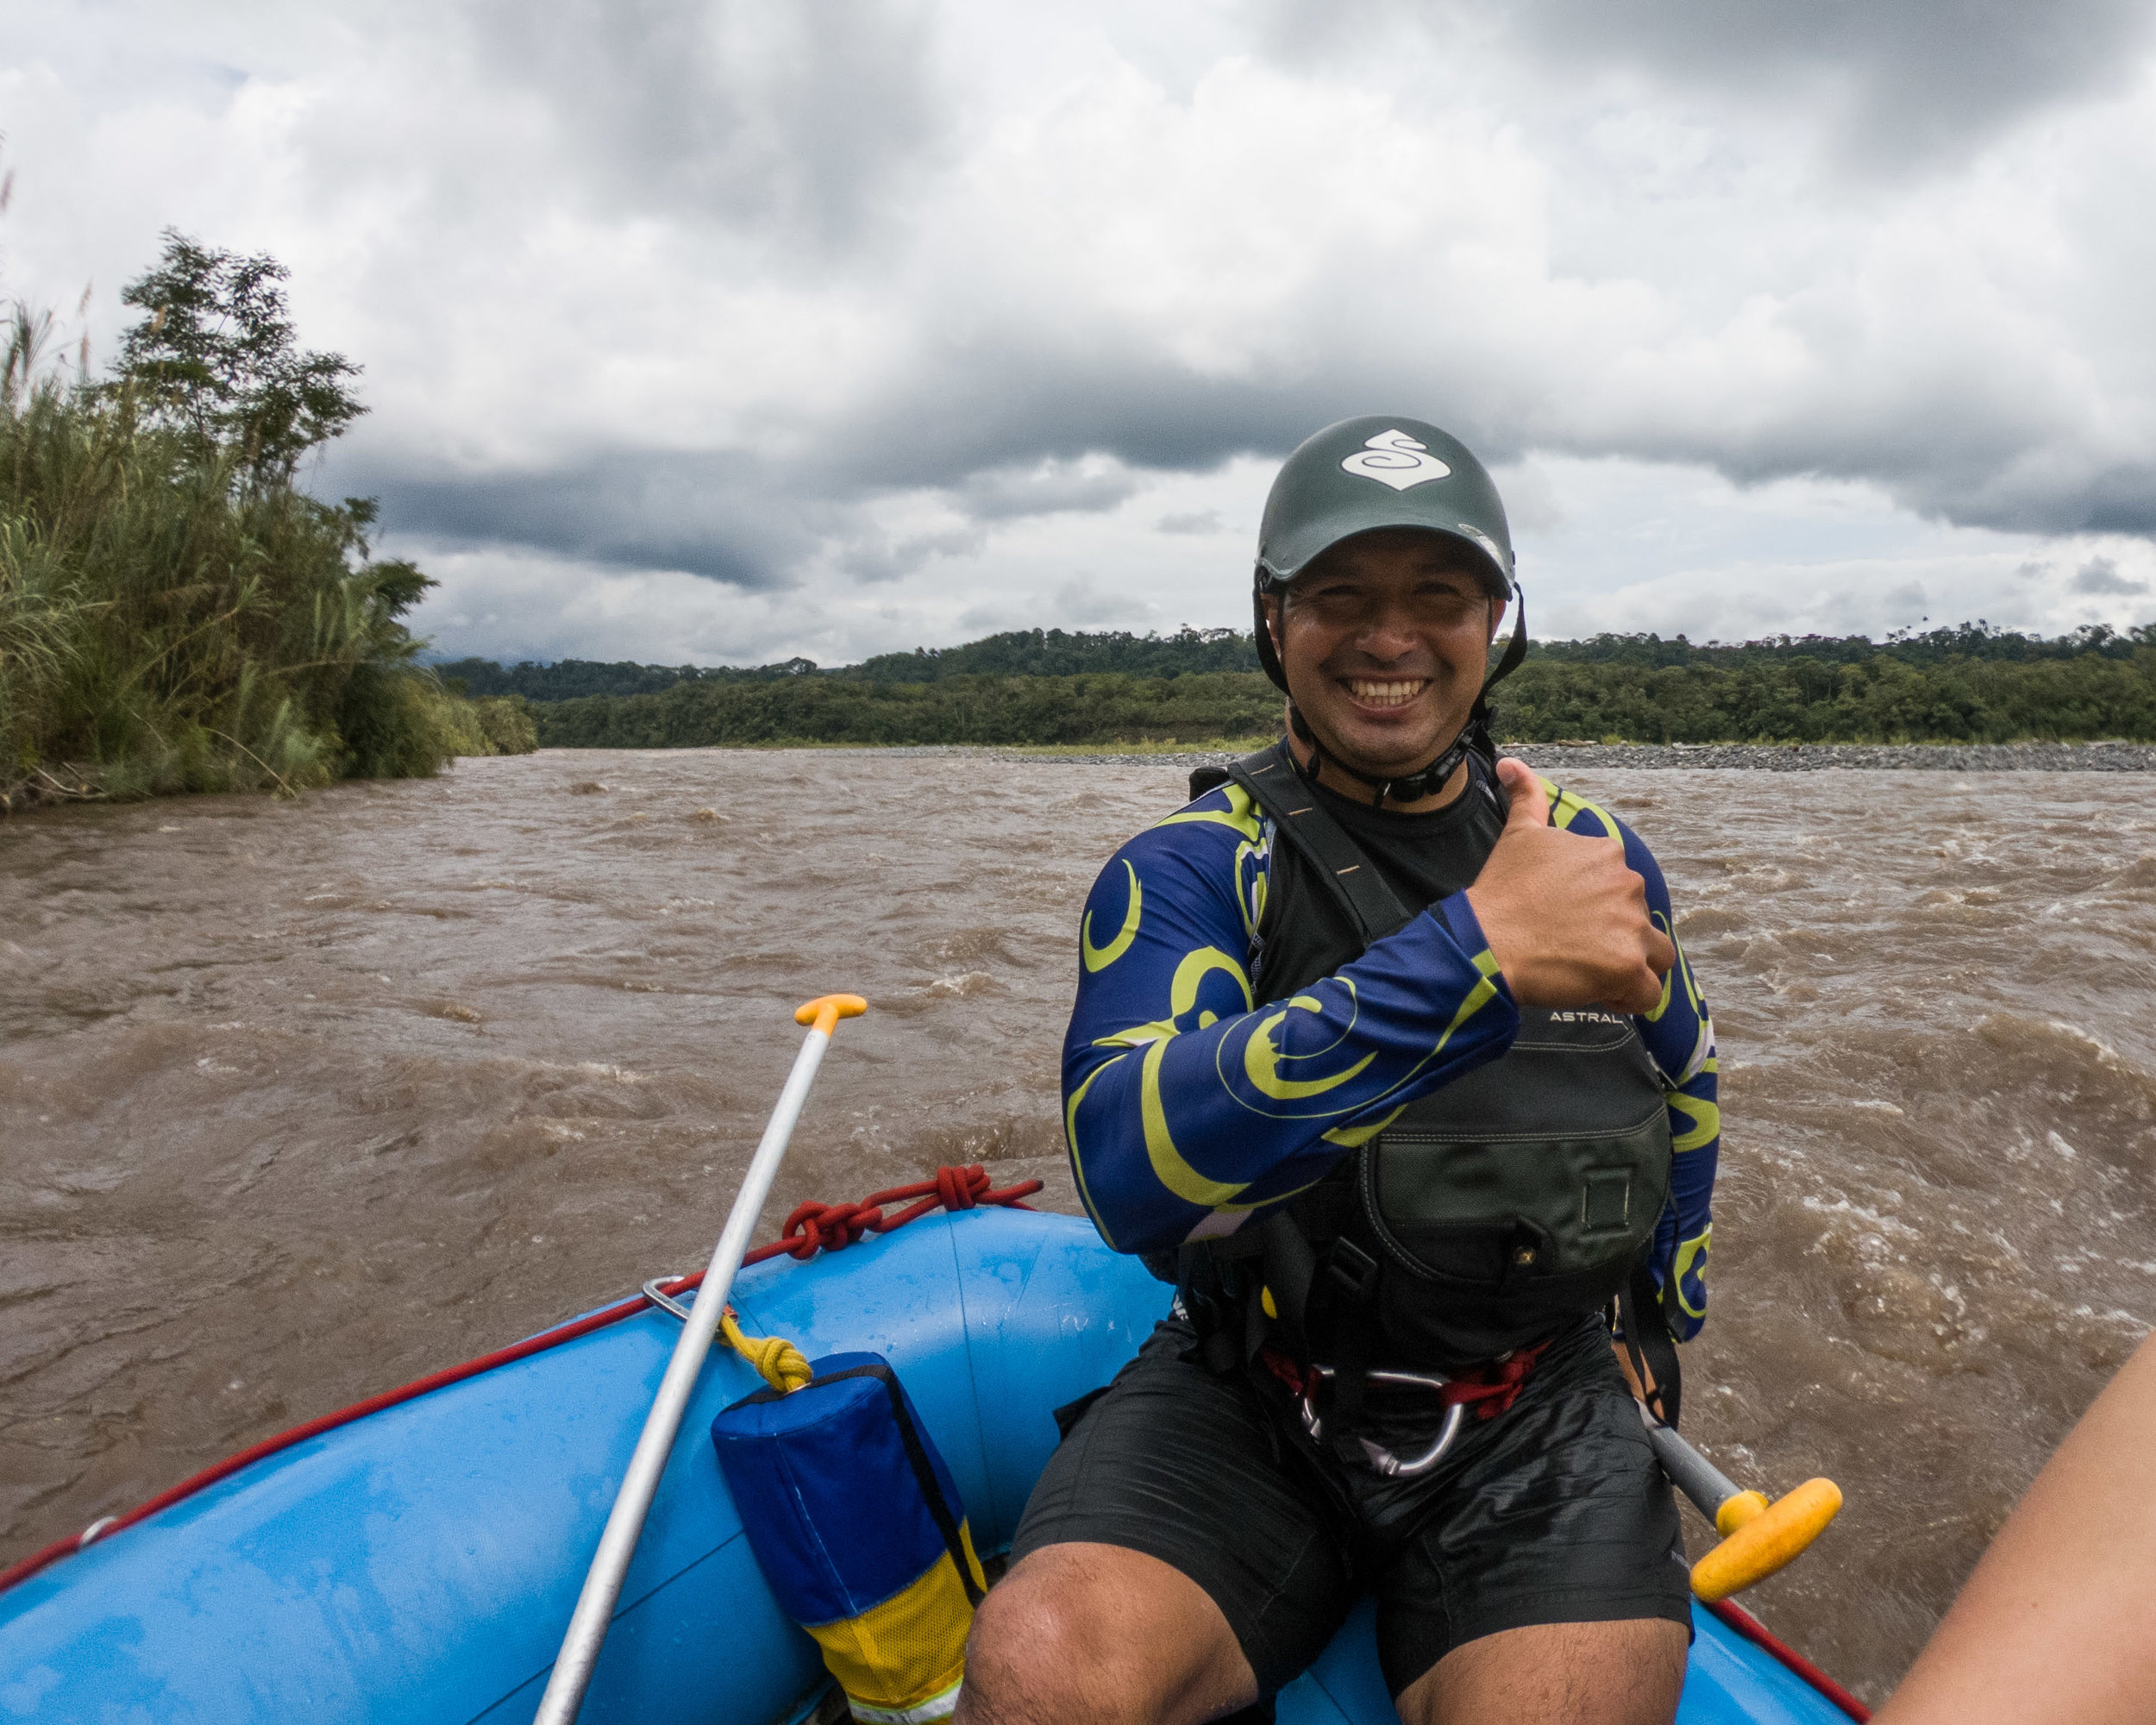 Our rafting guide.